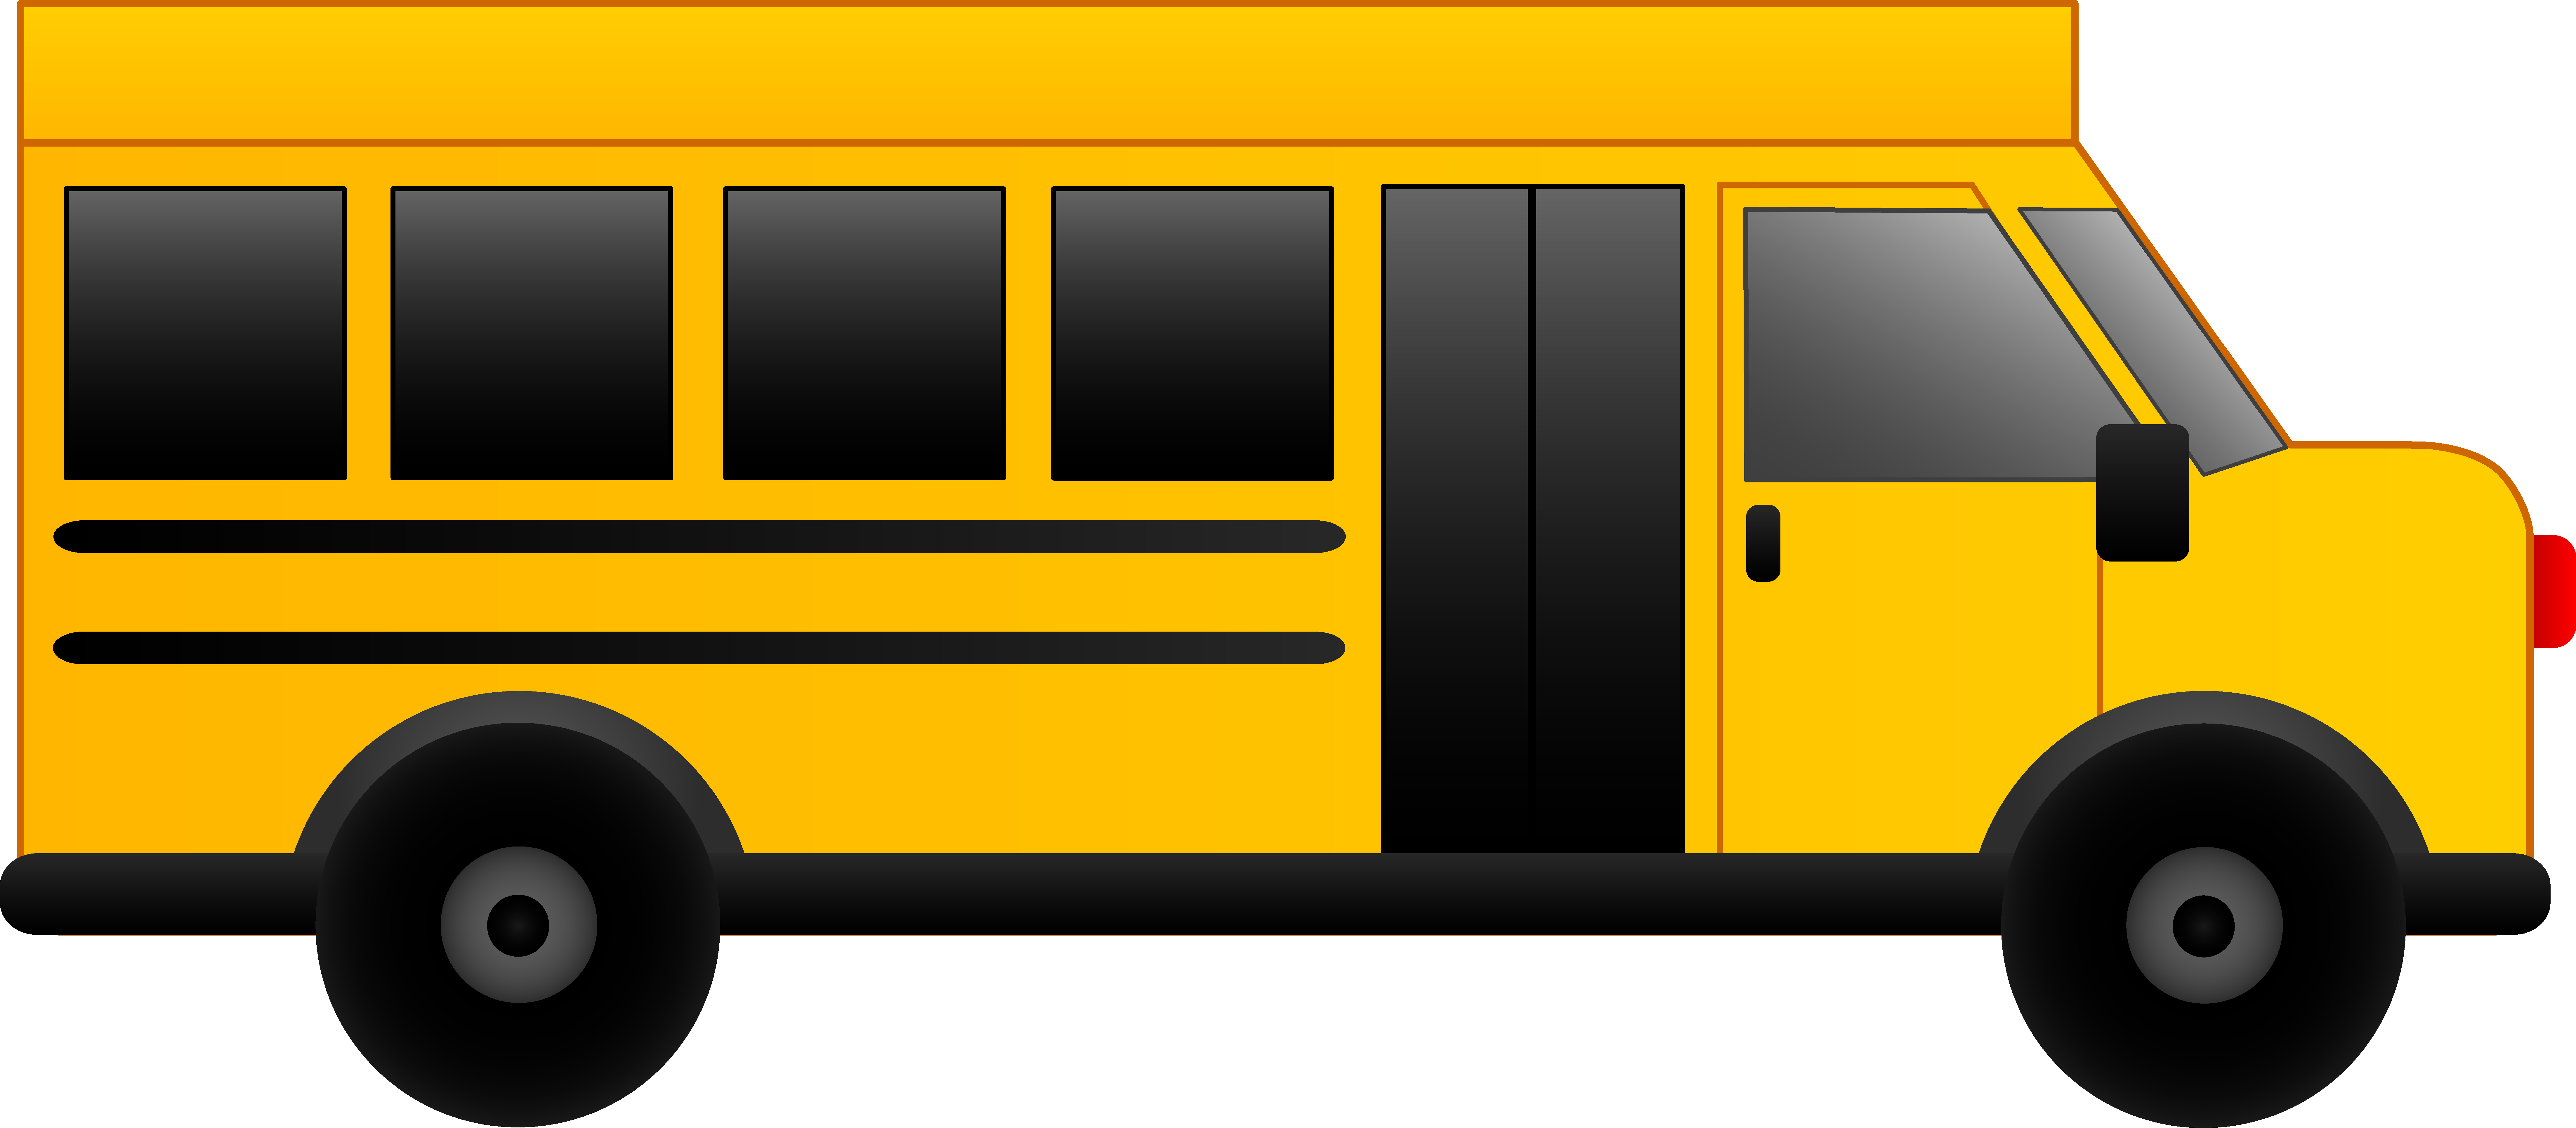 driver clipart yellow school bus